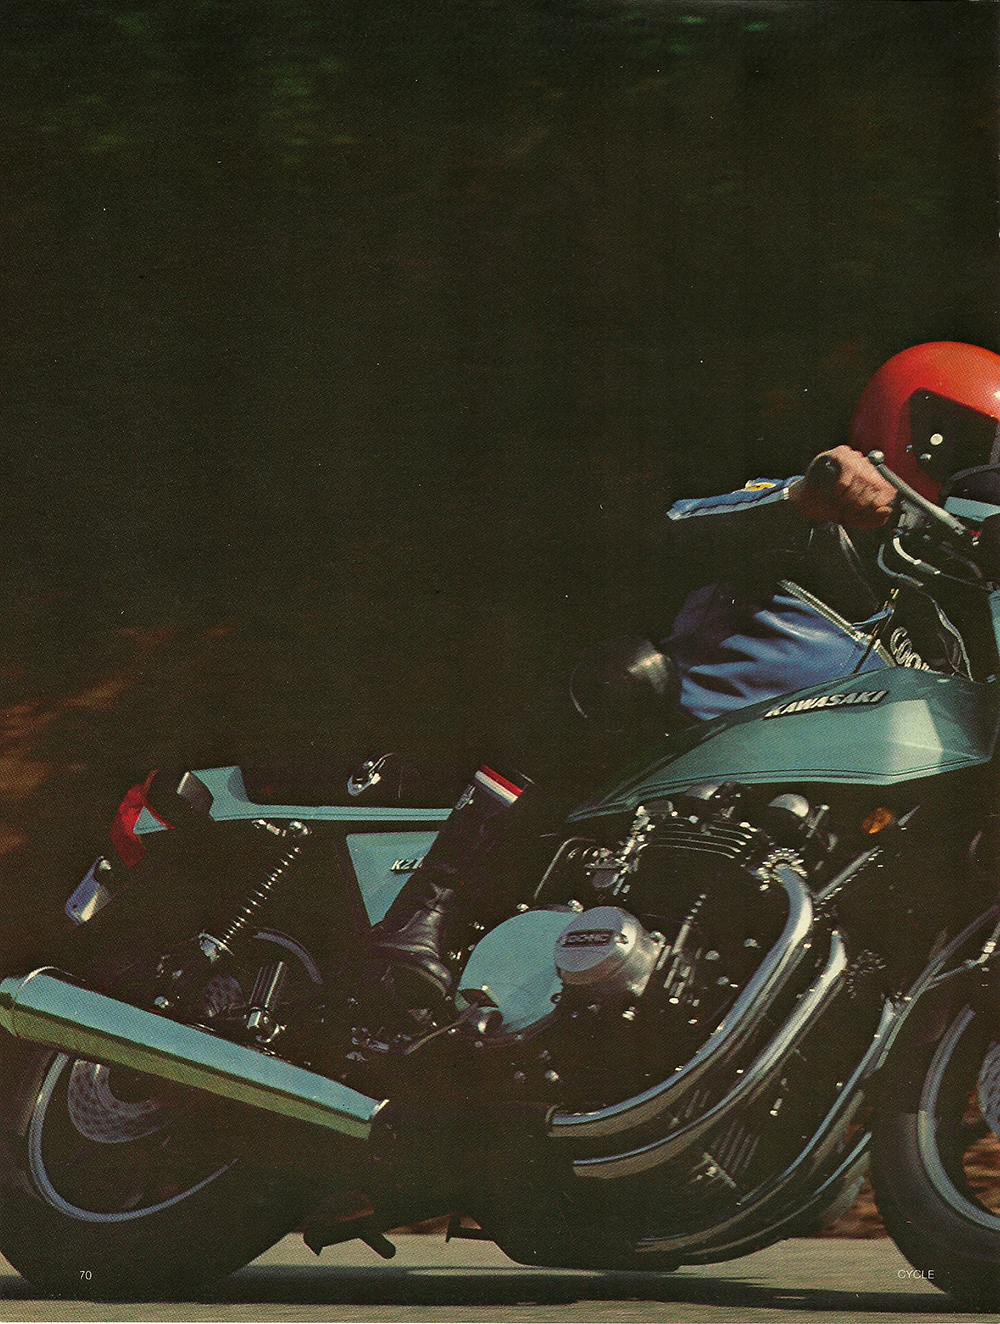 1977 Kawasaki Z1R road test 01.jpg